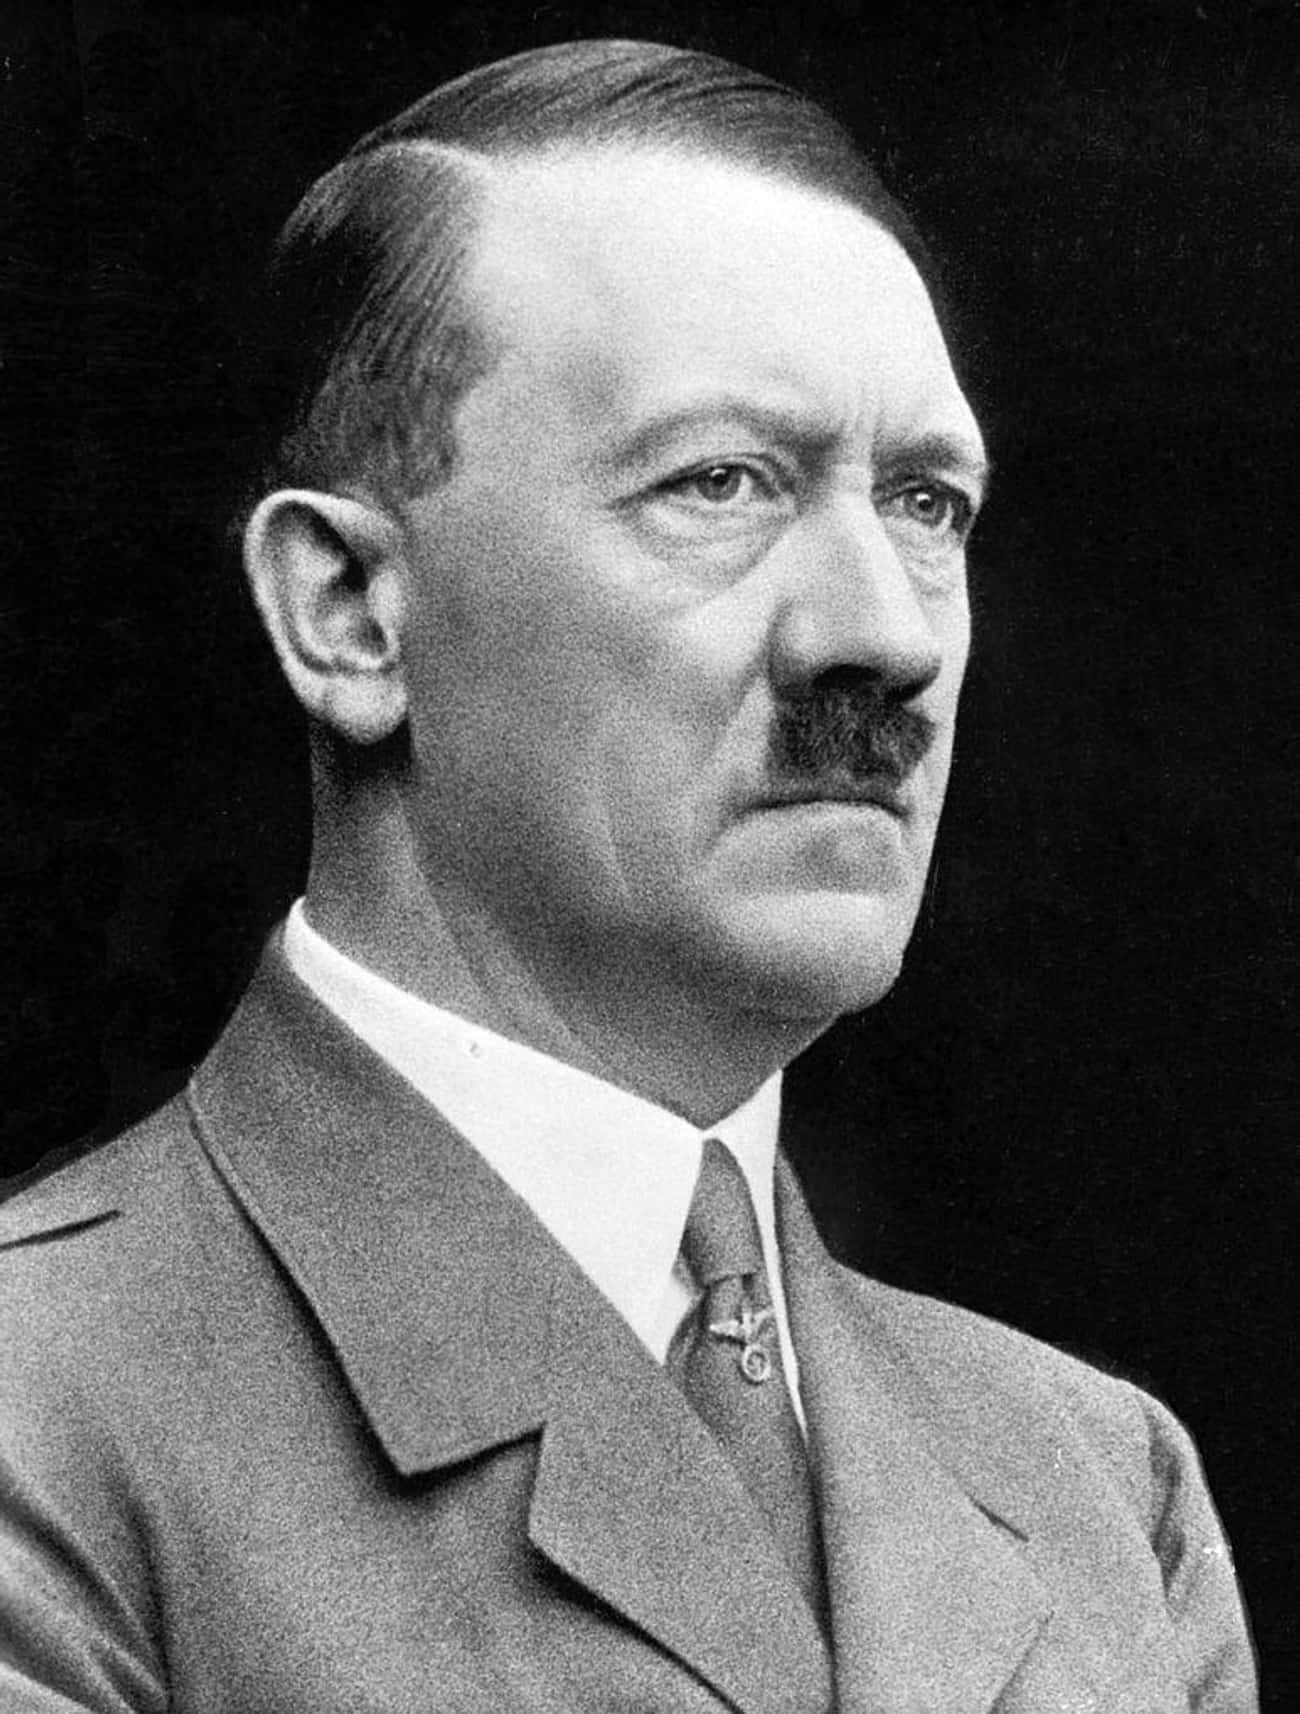 Adolf Hitler Was A Taurus is listed (or ranked) 4 on the list Here Are The Zodiac Signs For 16 Historical Figures - And What They Reveal About Their Personalities